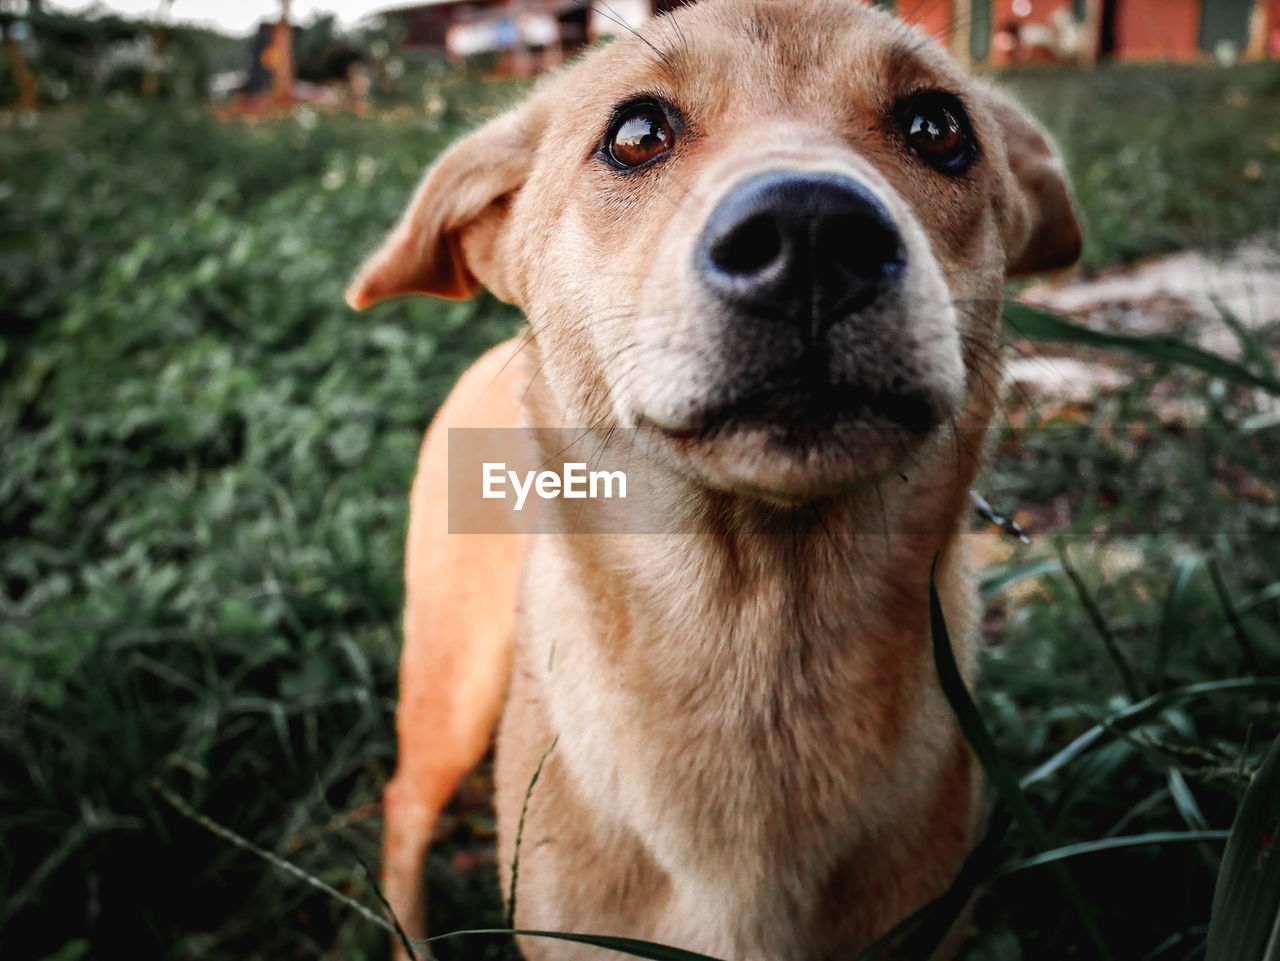 dog, canine, domestic, pets, one animal, domestic animals, mammal, portrait, looking at camera, vertebrate, day, close-up, people, field, animal body part, plant, animal nose, snout, animal mouth